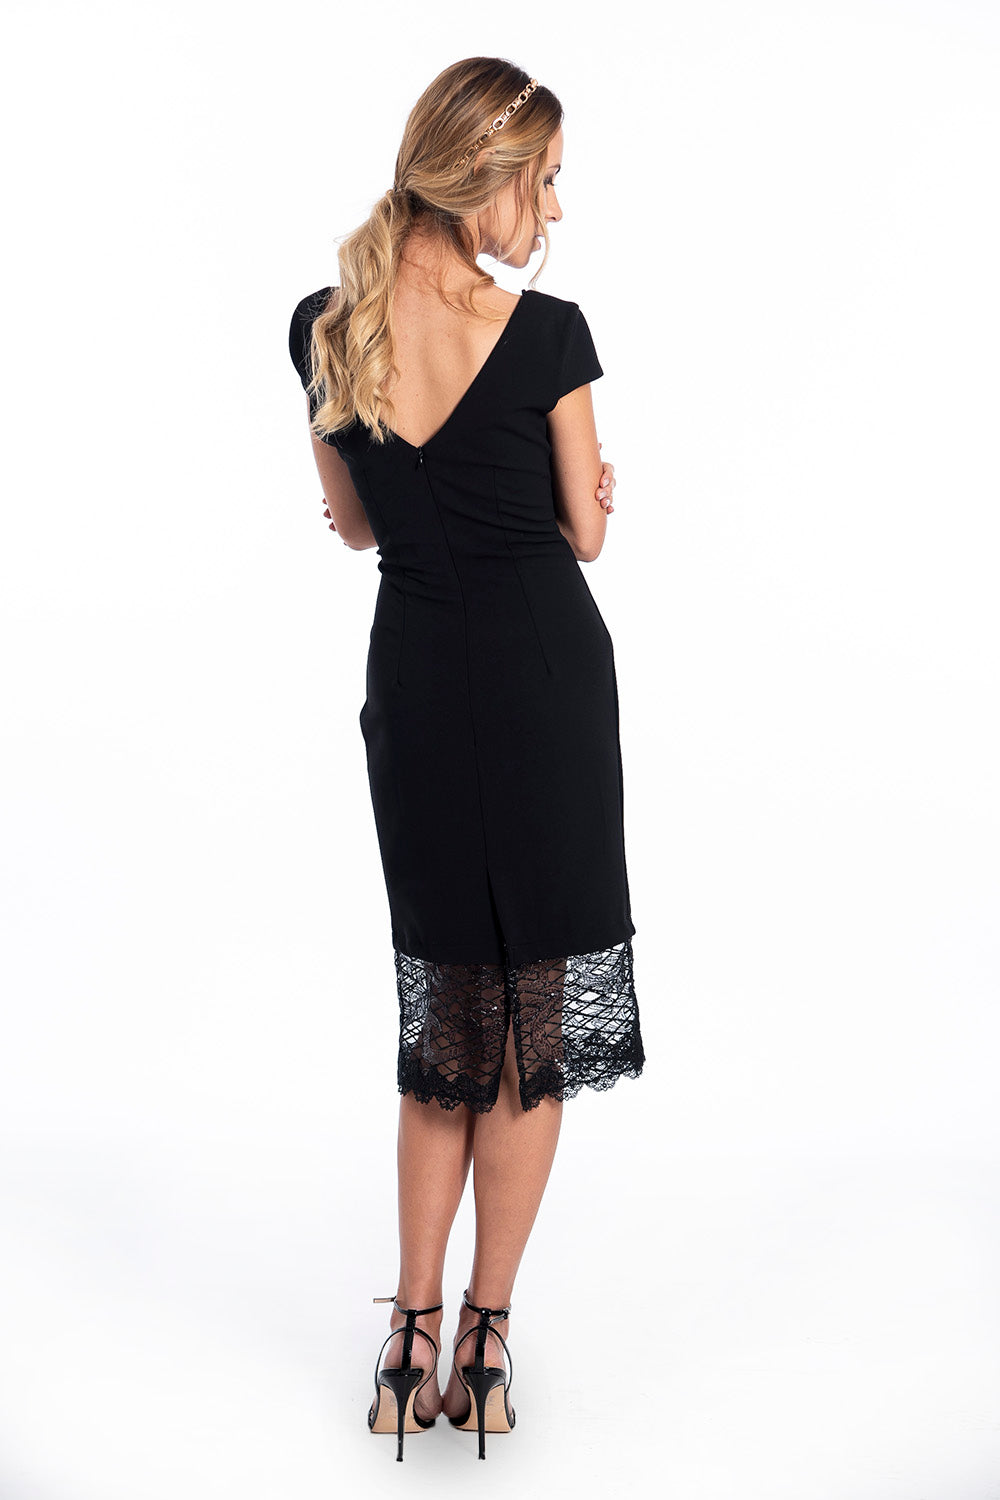 Rinascimento bardot pencil skirt with lace and sequins bottom details